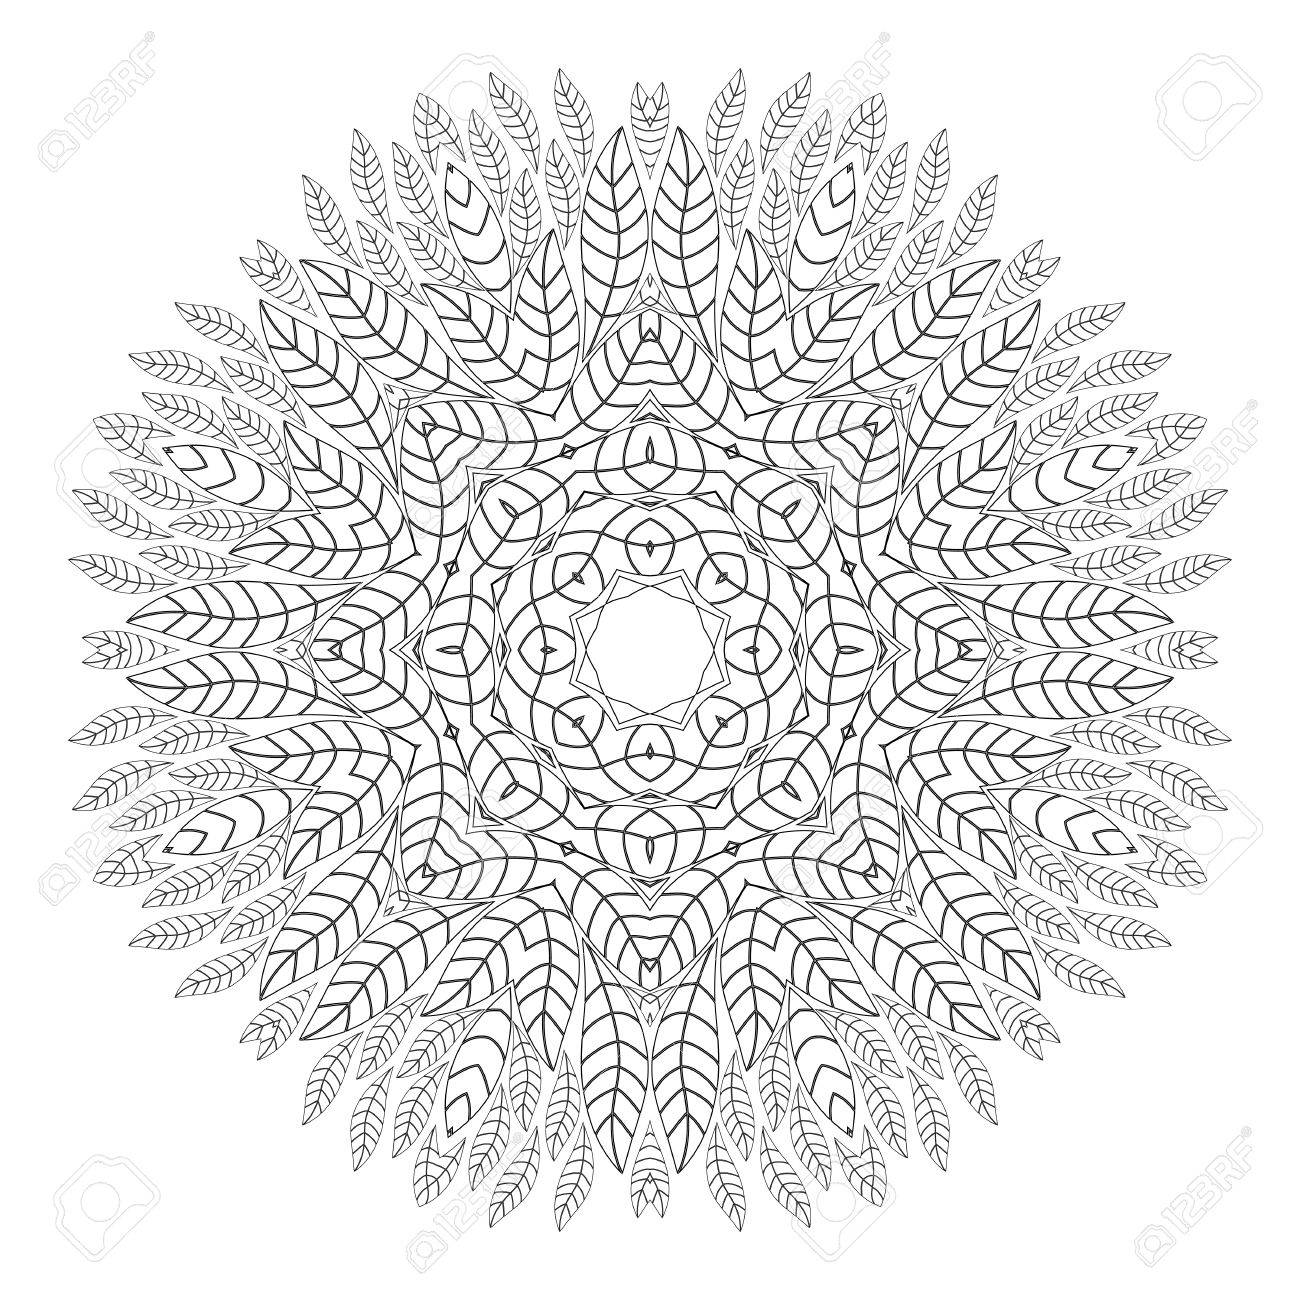 Mandala Antistress Coloring Pages For Adults Monochrome Circular